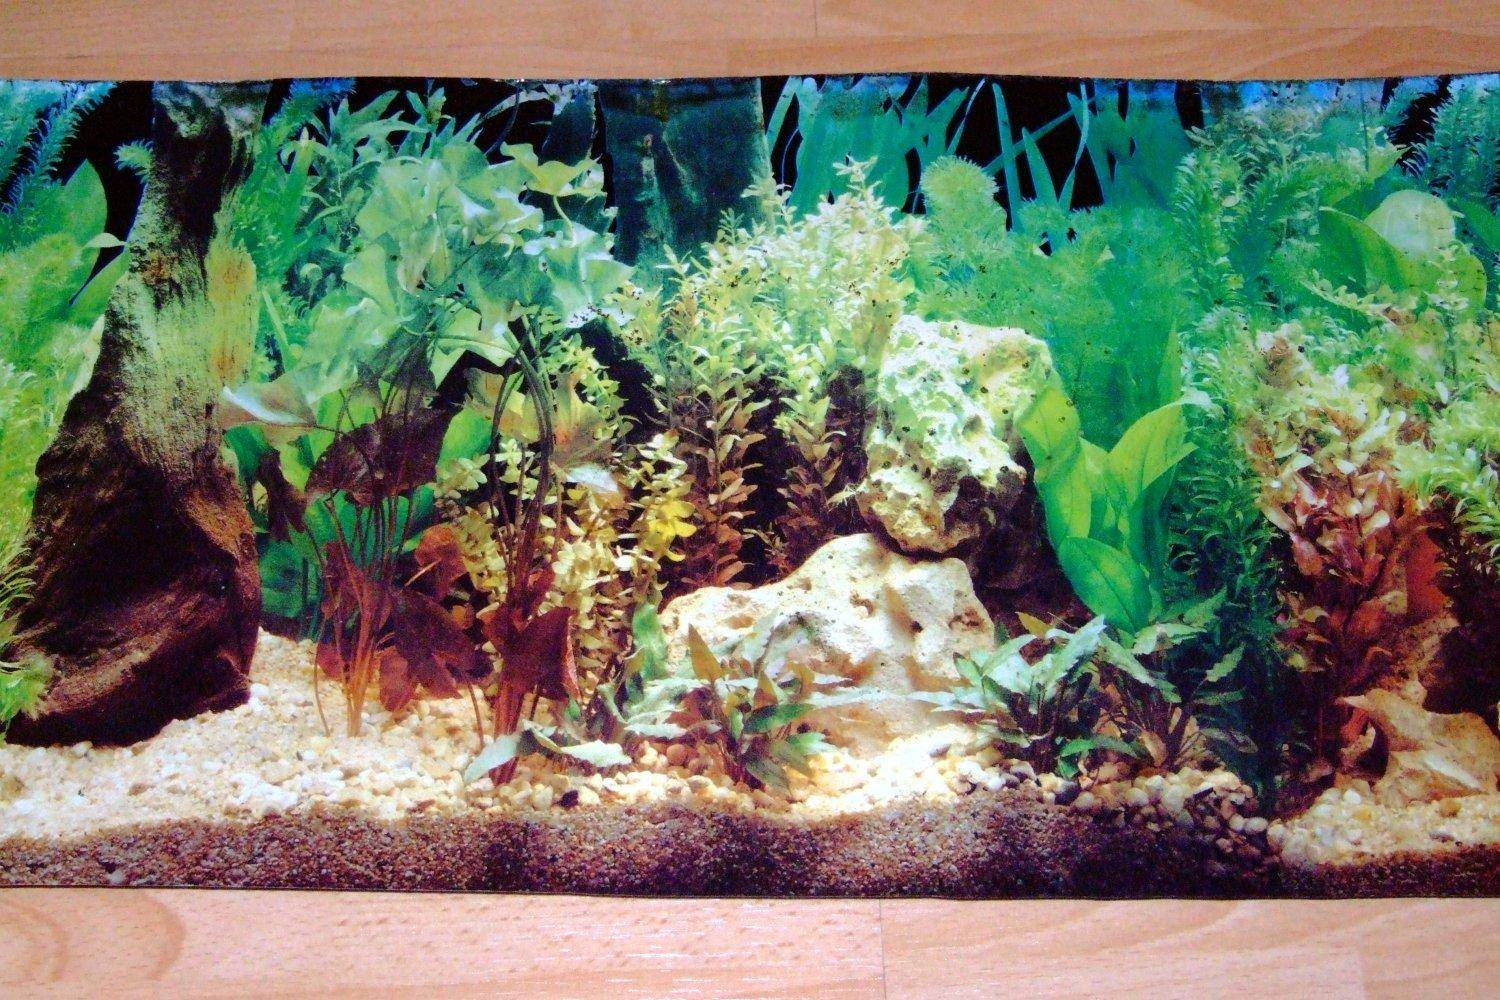 Fish aquarium guide - Aquarium Background Resized Image 1 Aquarium Background Resized Image 2